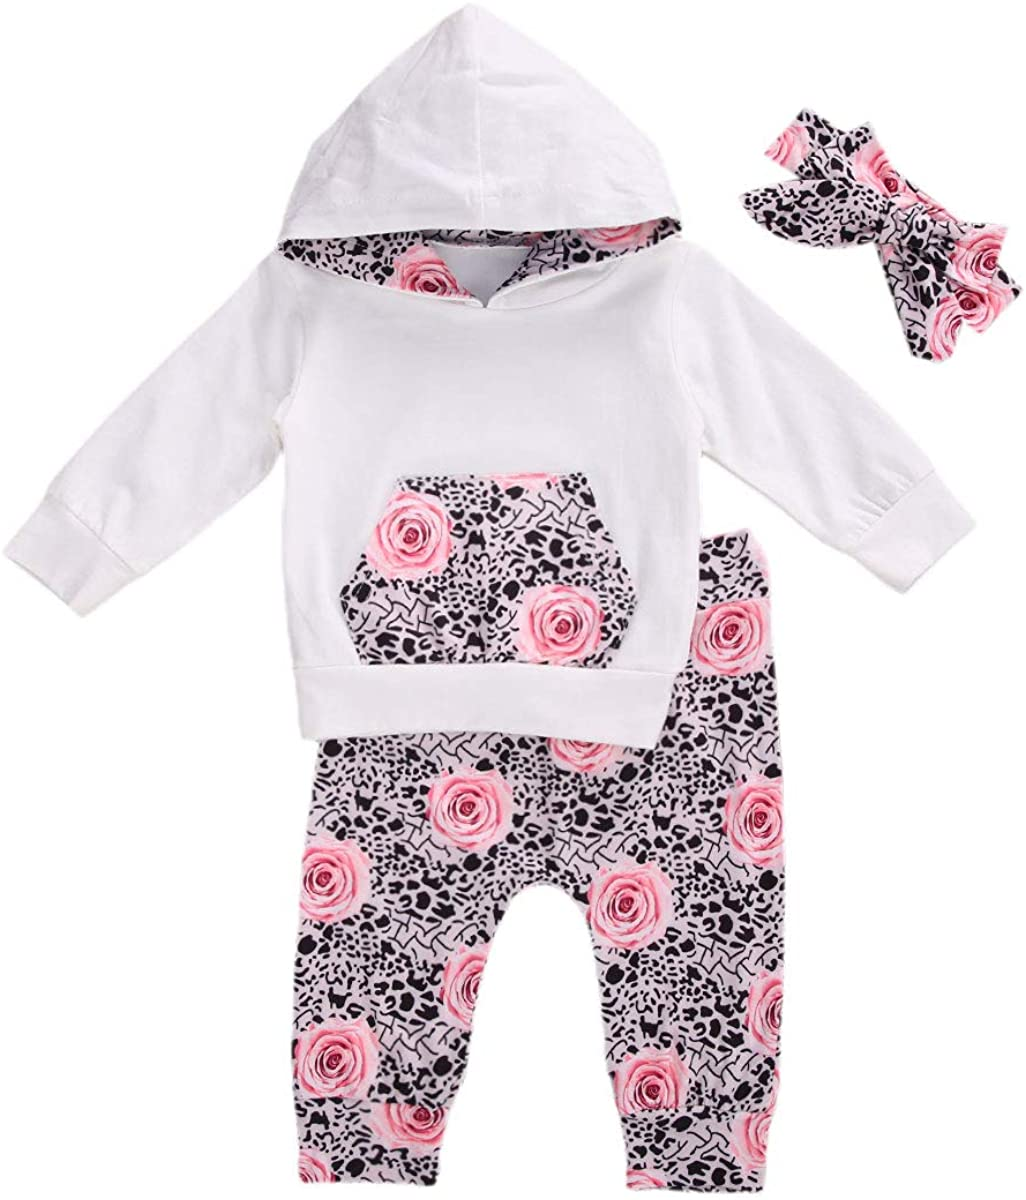 Toddler Baby Girls Outfits Long Sleeved Hoodie Sweatshirt Tops Leopard Pants Fall Winter 2PCS Clothes Sets